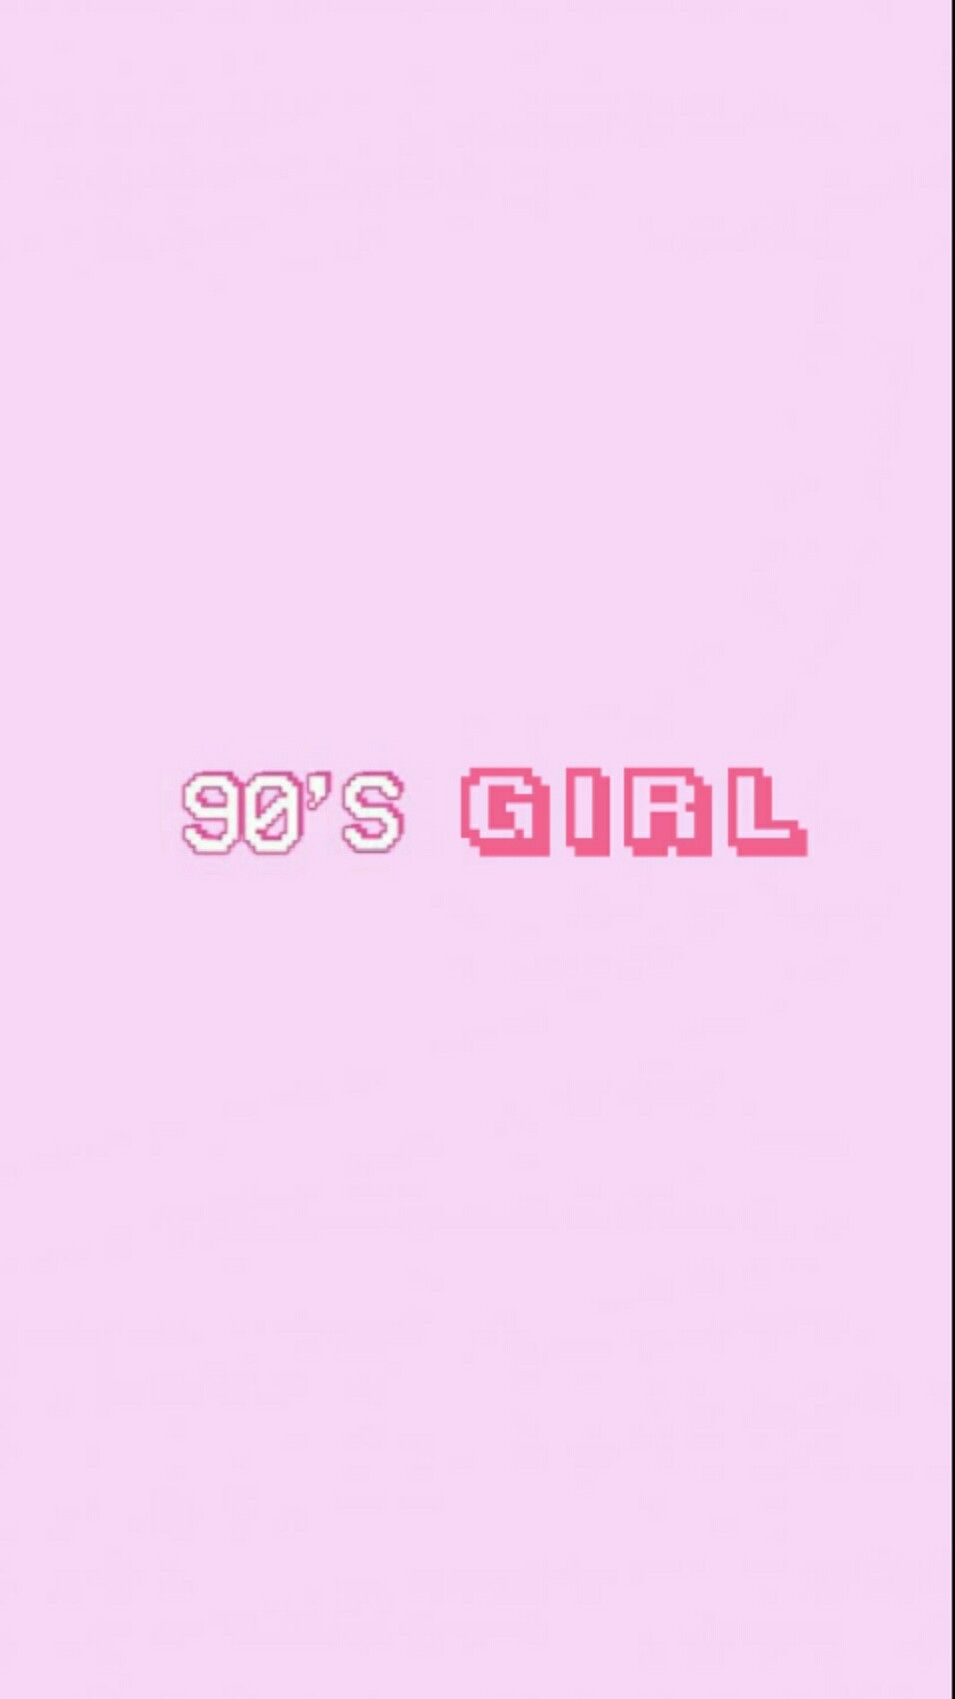 90 S Girl Tumblr Wallpaper Aesthetic Wallpapers Iphone